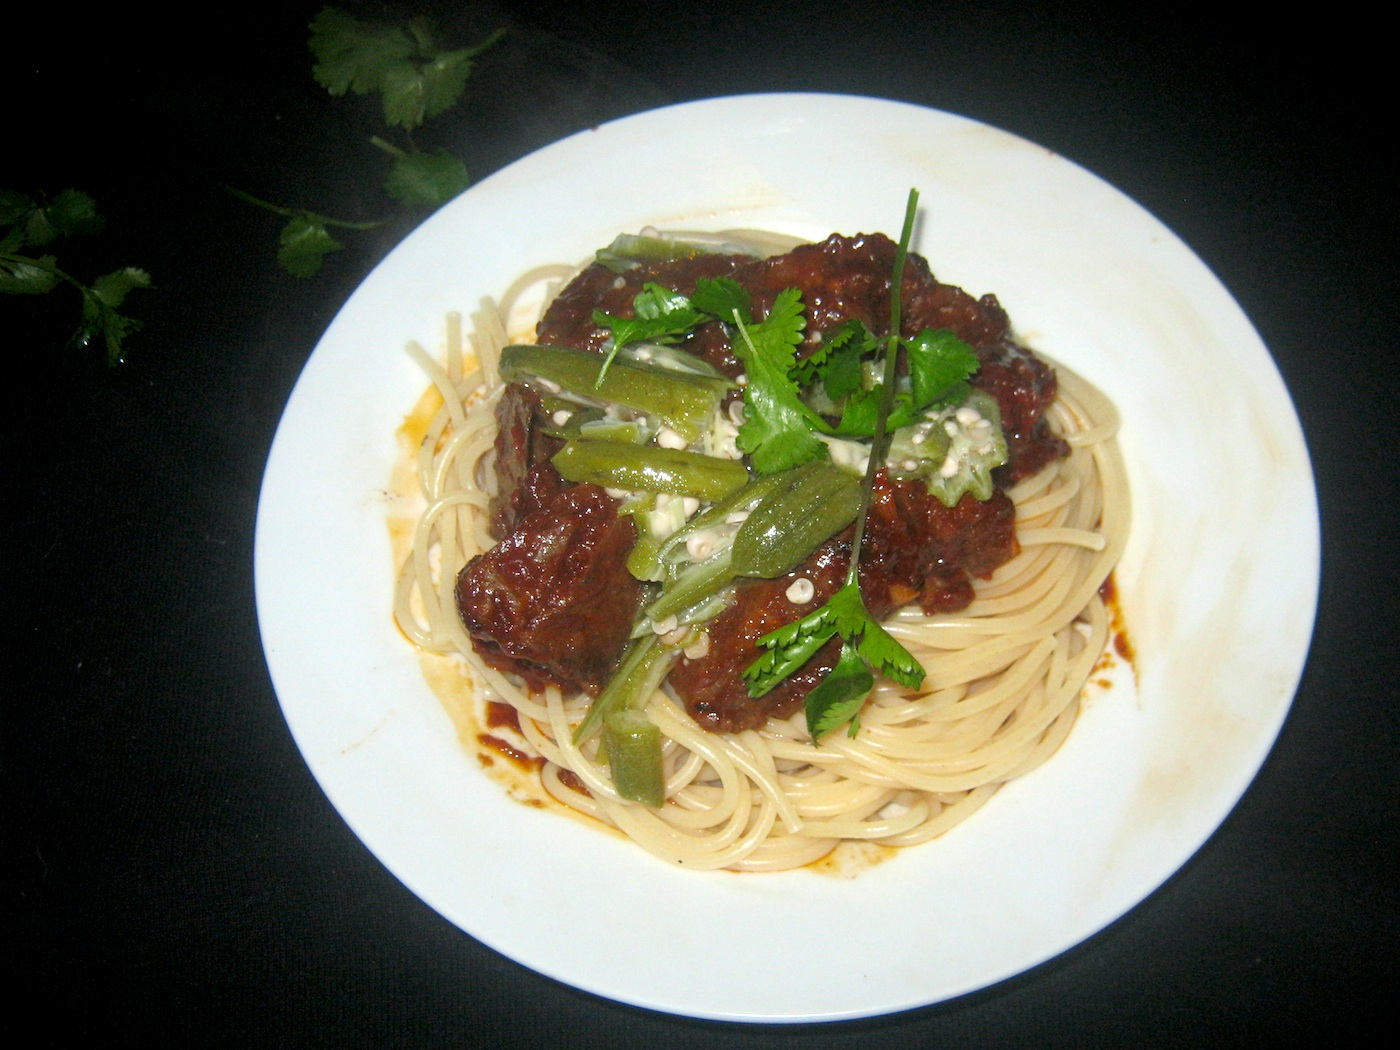 Carolina Reaper Venison Curry with Okra and Coriander Leaves